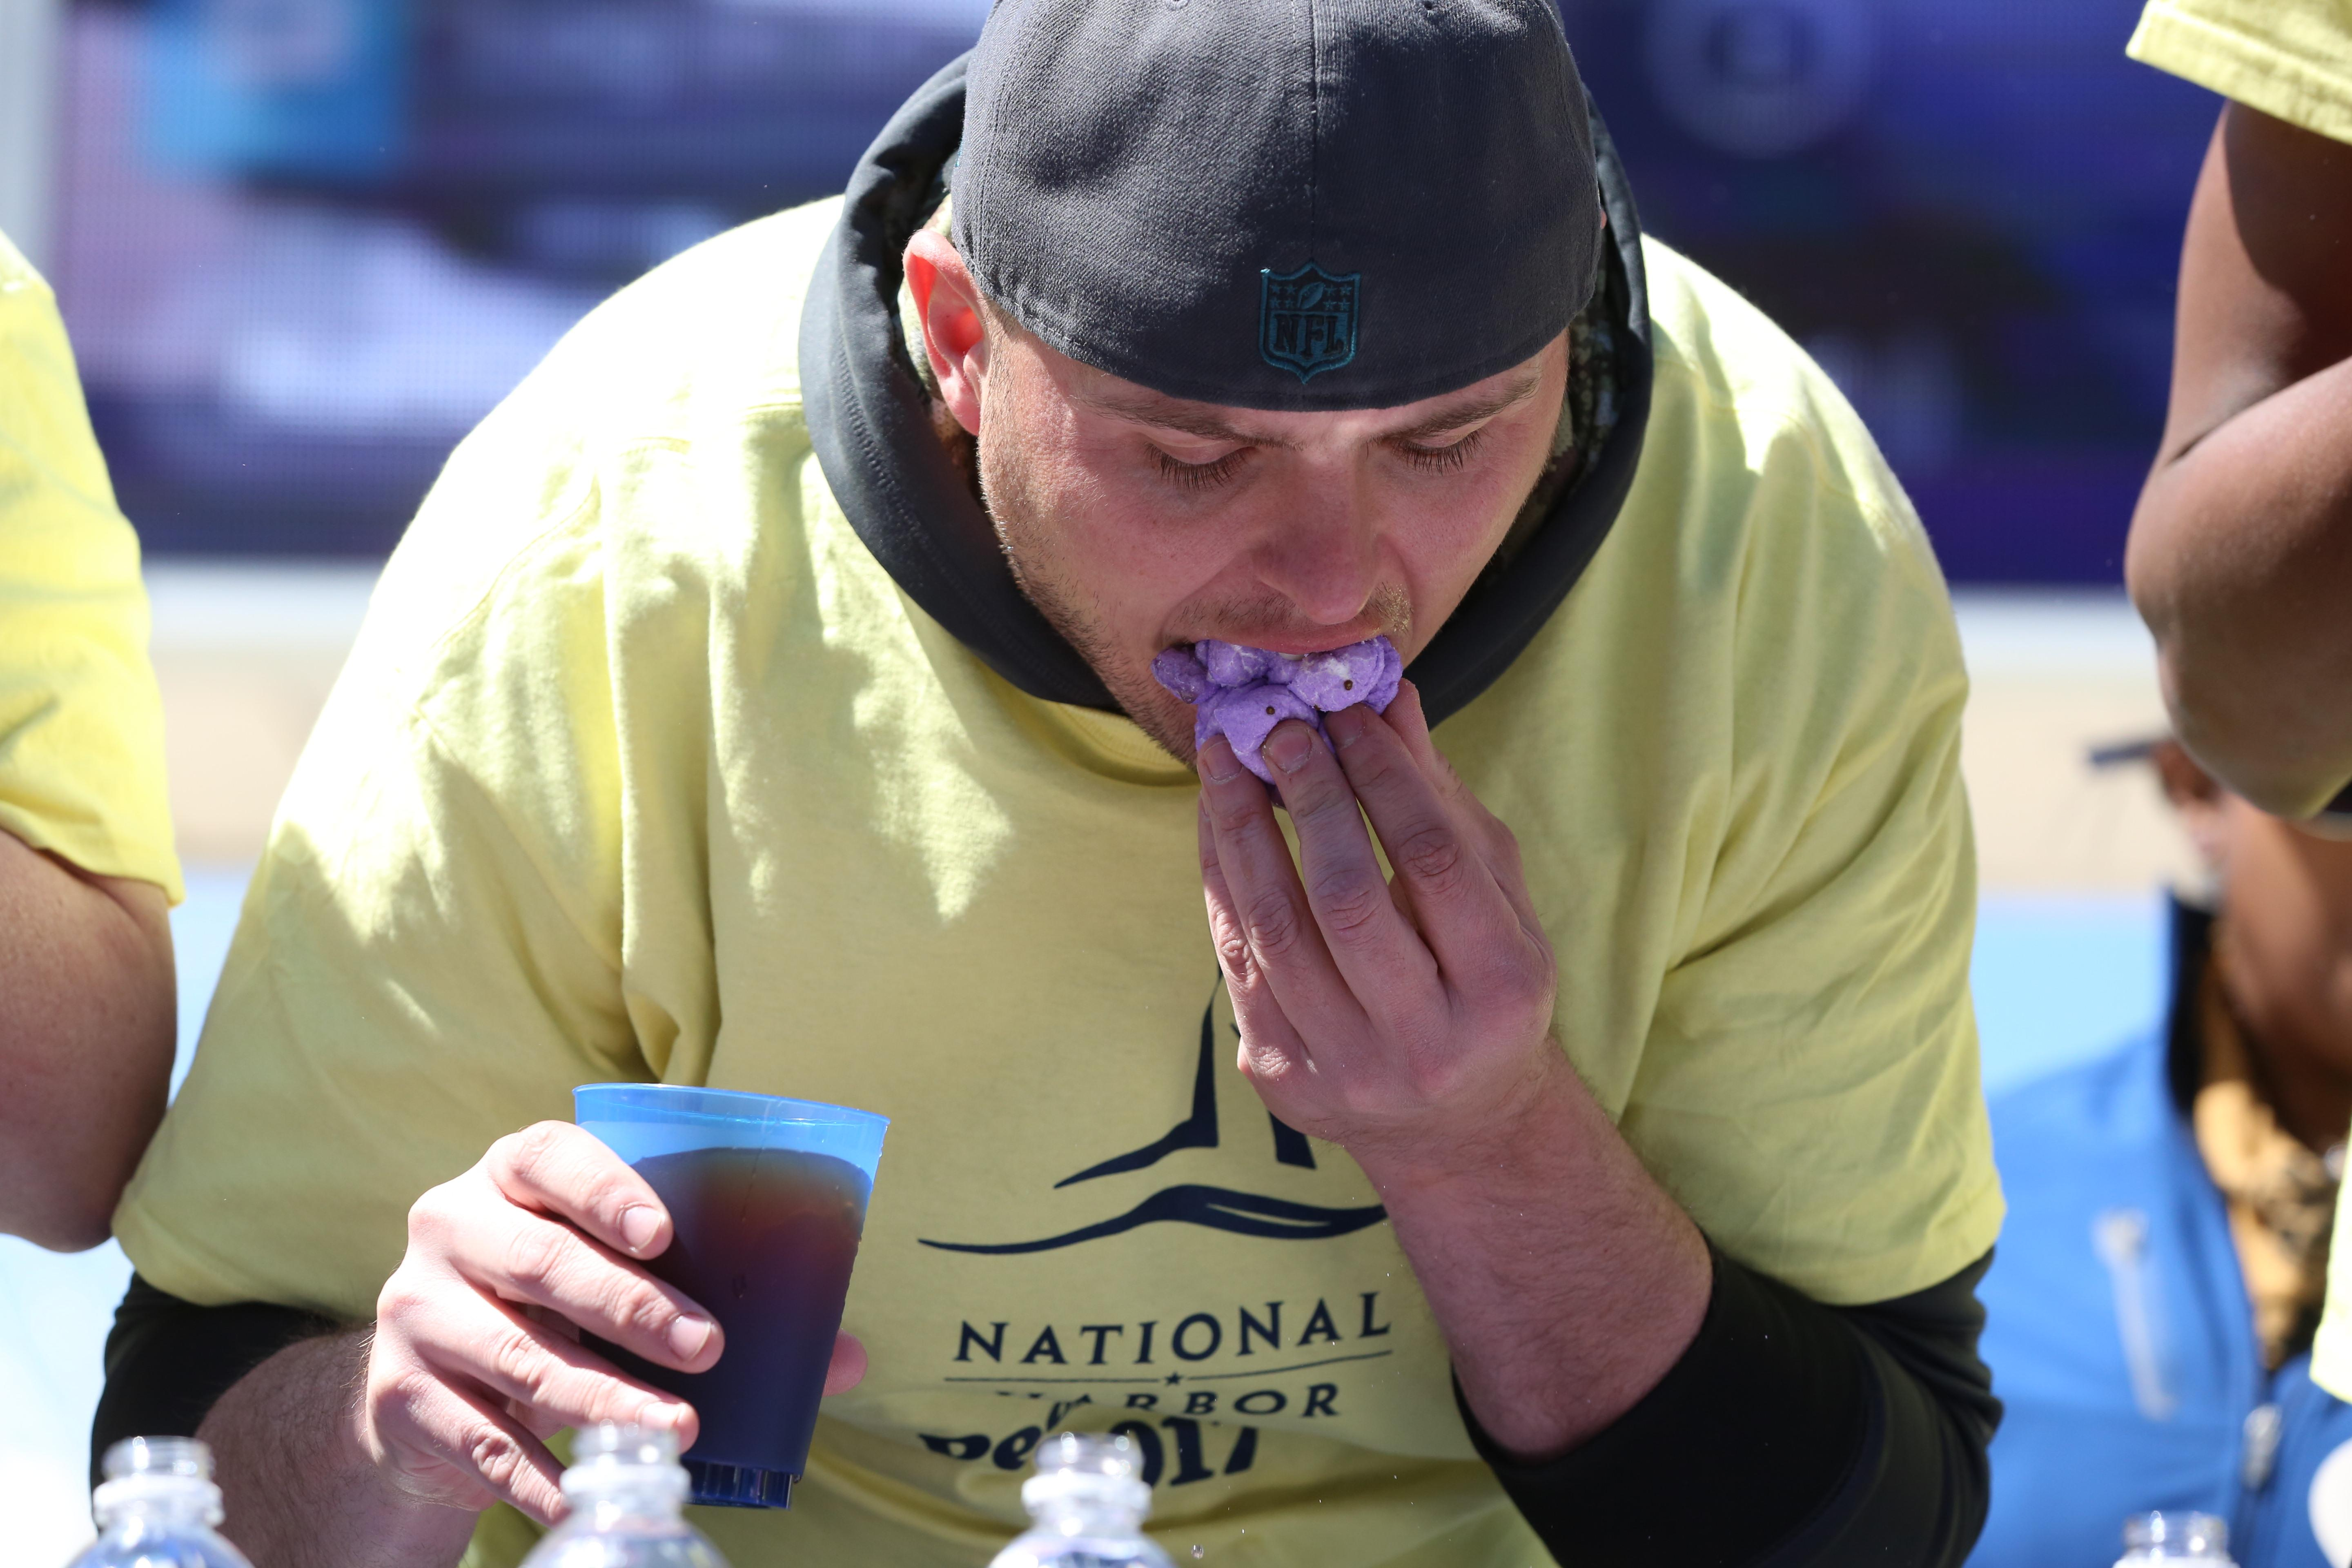 Competitive eating is a well-known American pastime, but there's something about watching grown adults stuff their mouths with multi-colored Easter candy in the hopes of winning money. On April 9, a panel of professional competitive eaters ate as many Peeps as possible over the course of 5 minutes for National Harbor's annual Peeps Day. (Amanda Andrade-Rhoades/DC Refined)